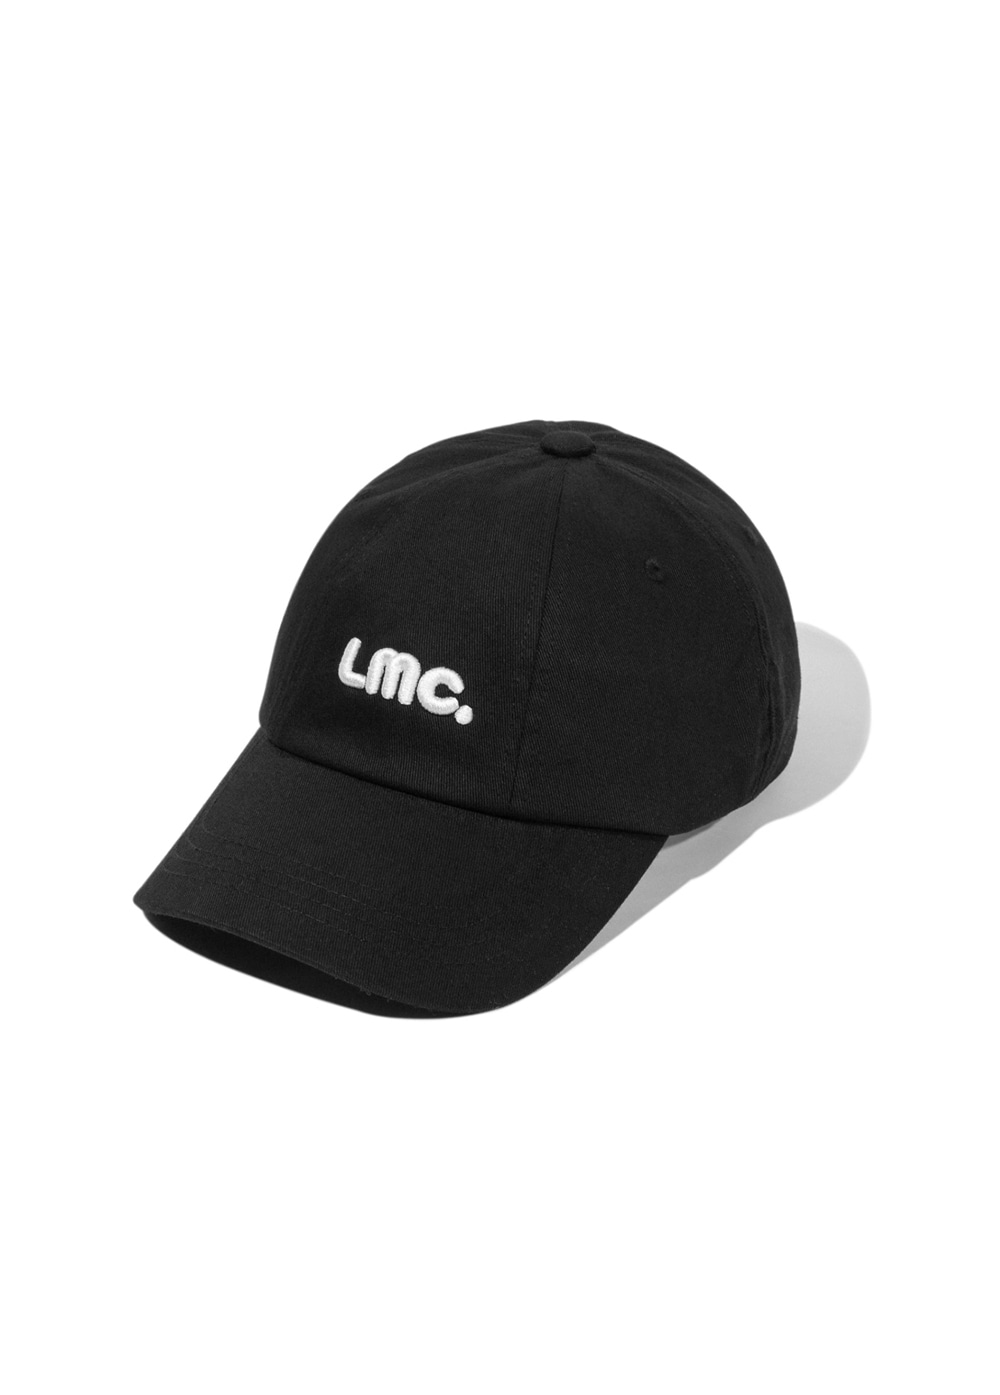 LMC EMBO LOGO ROTATE 6 PANEL CAP black